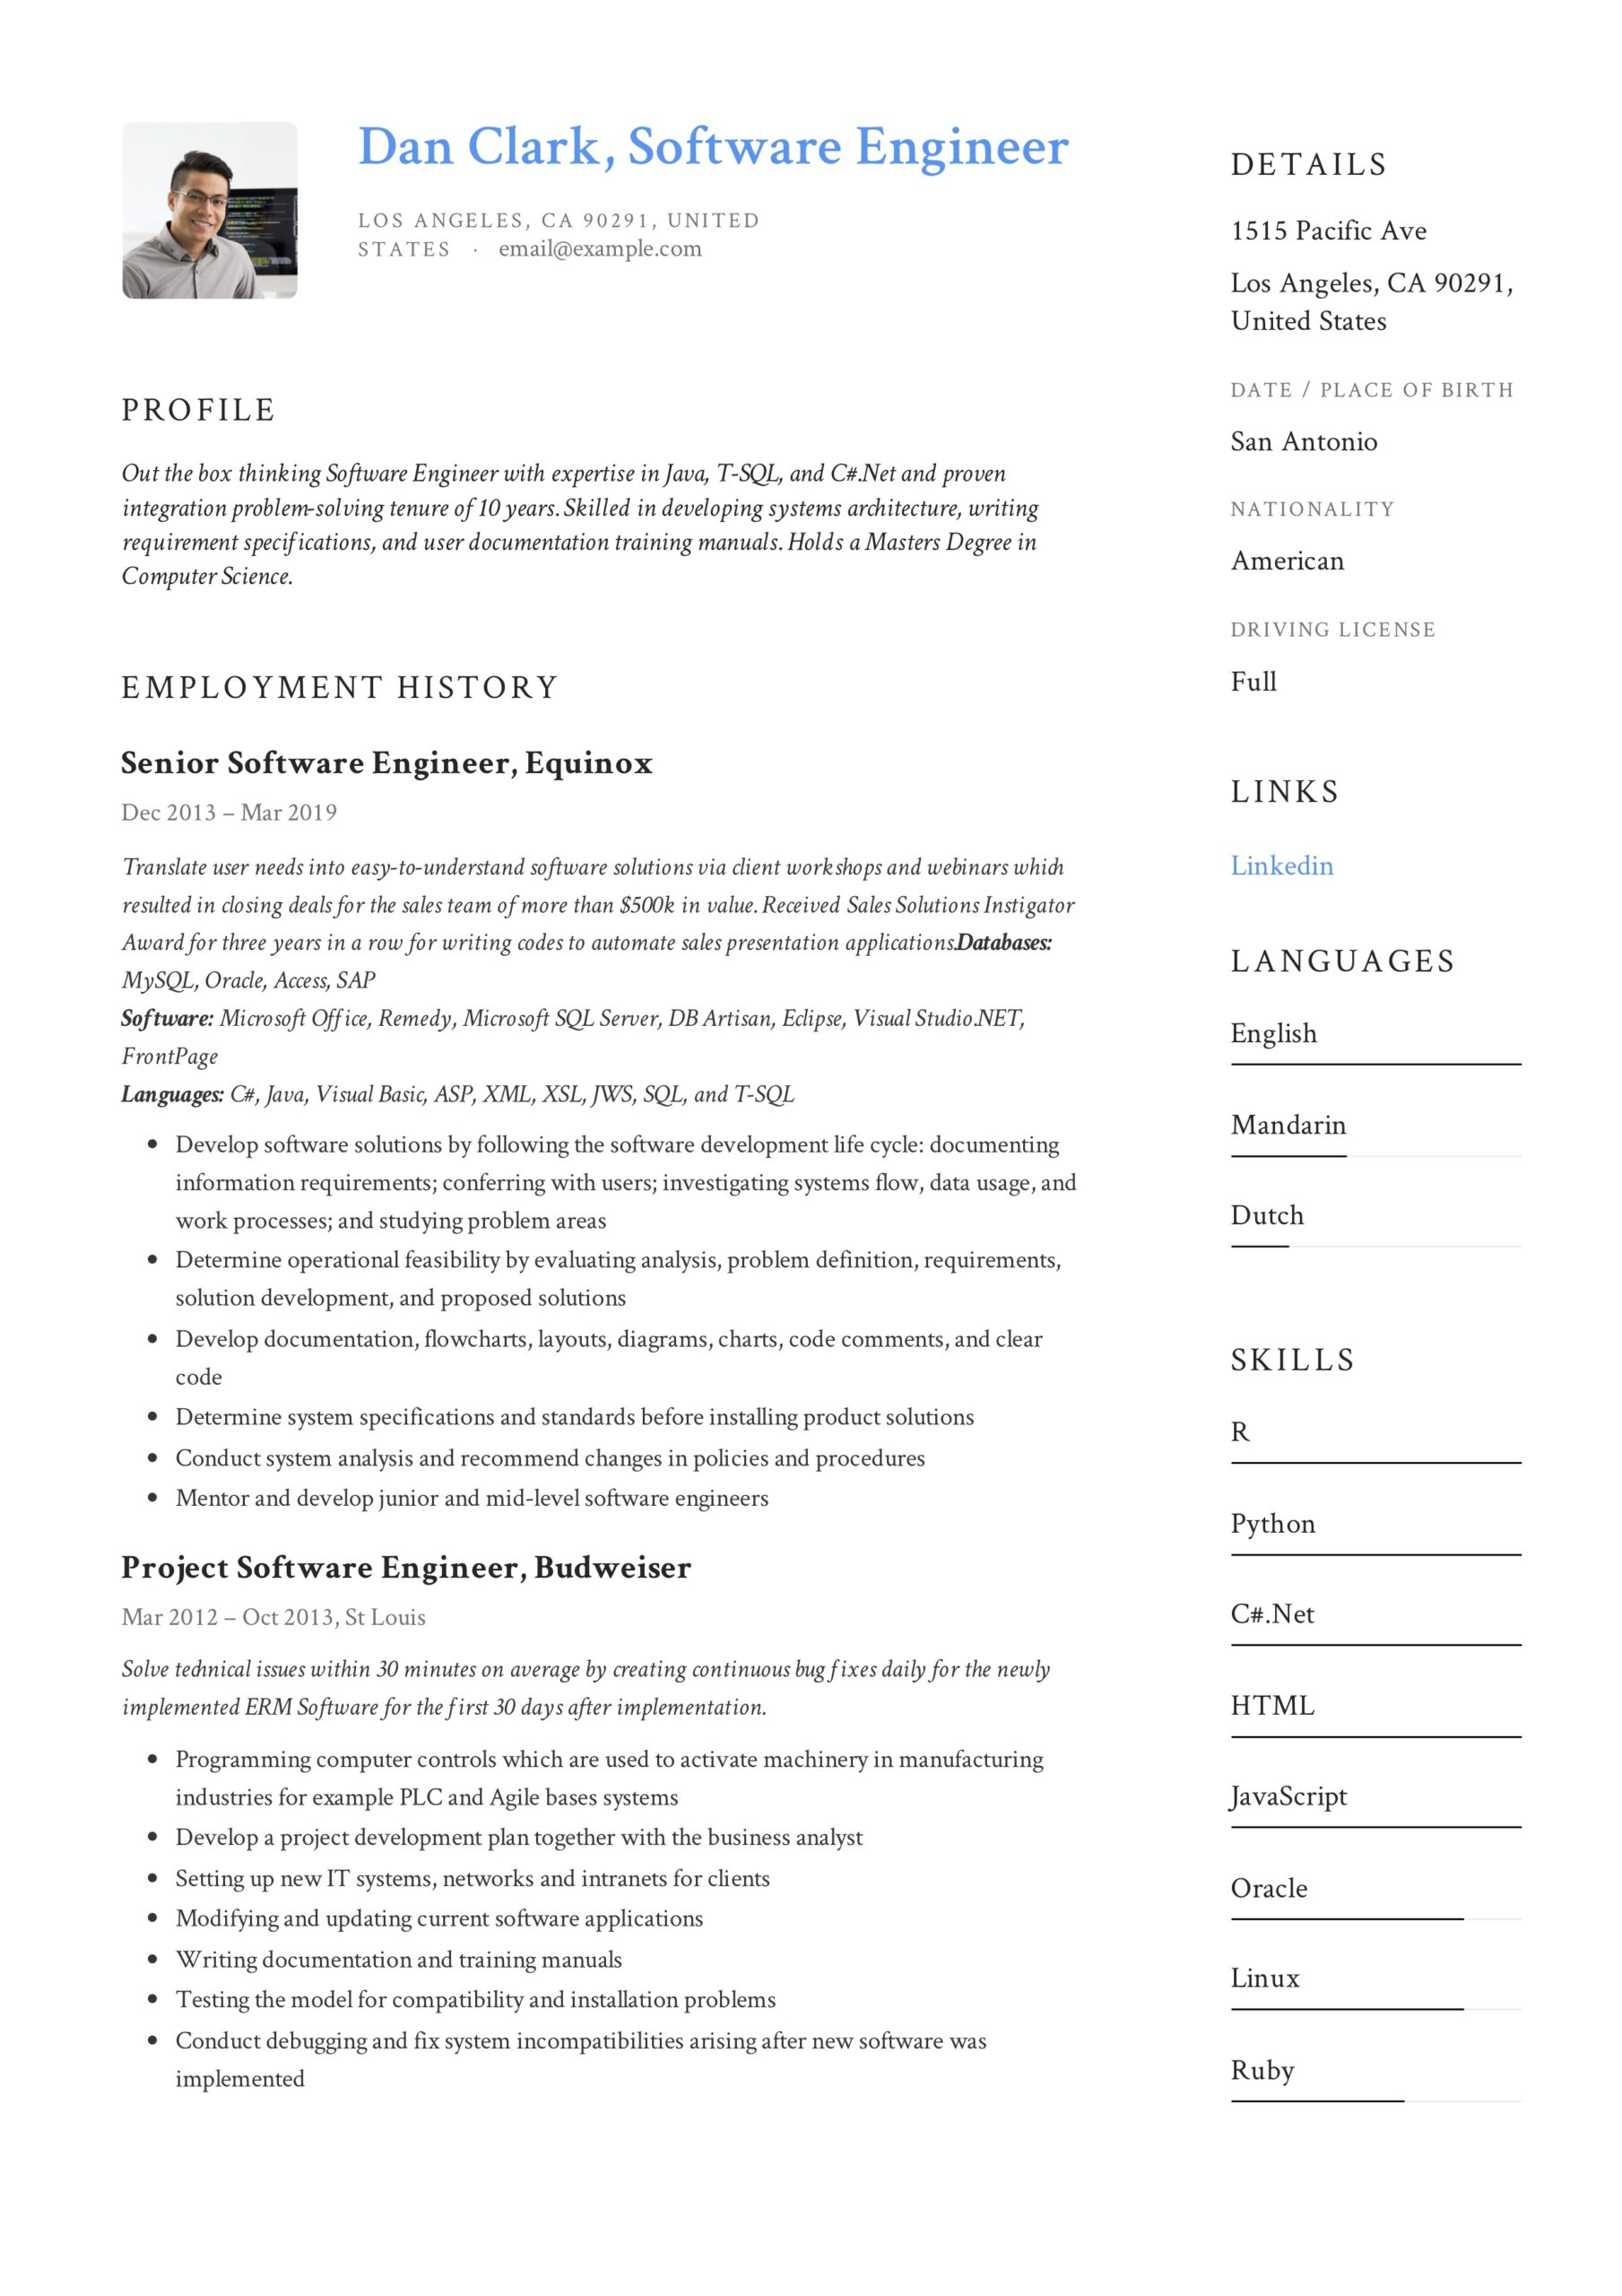 software engineer resume writing guide samples pdf computer vision dan technical document Resume Computer Vision Engineer Resume